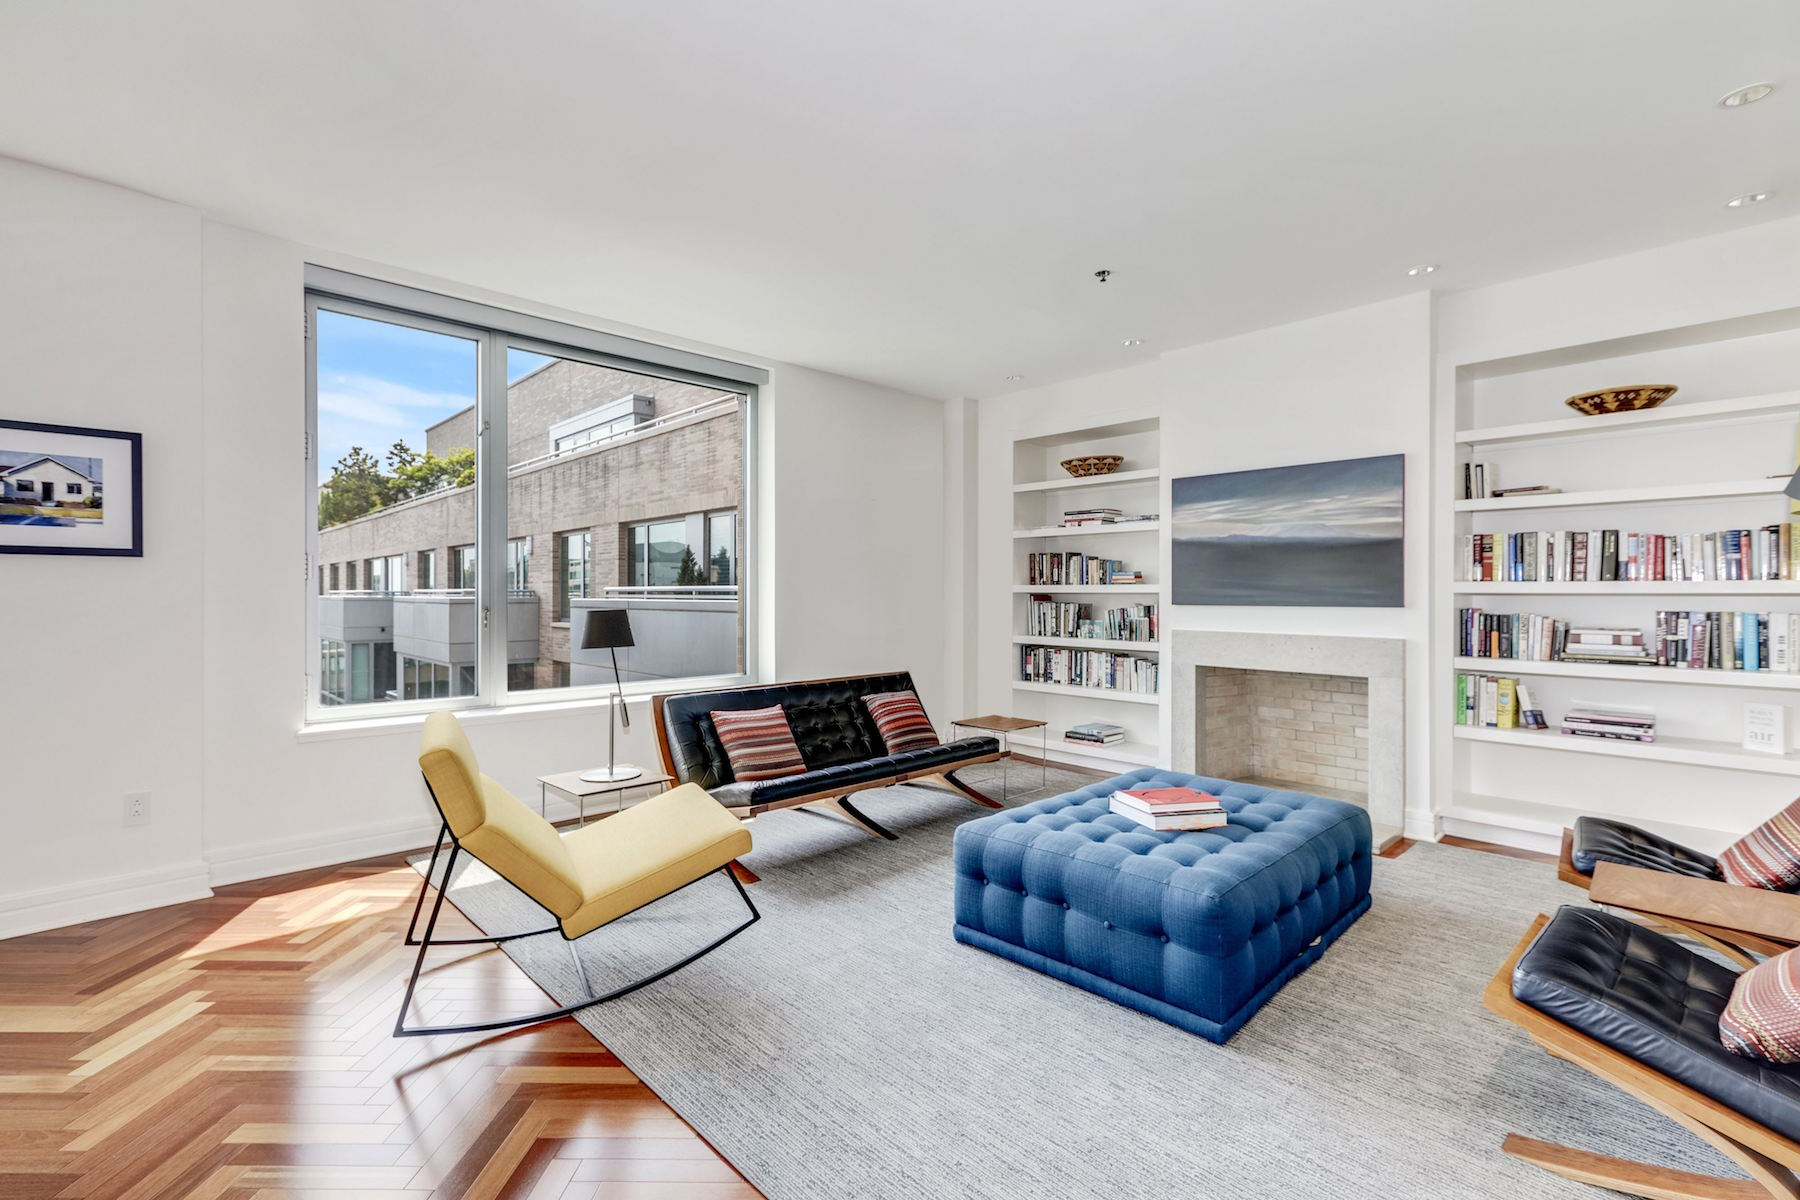 Additional photo for property listing at 1155 23rd St NW #ph3j 1155 23rd St NW #ph3j Washington, District Of Columbia 20037 United States